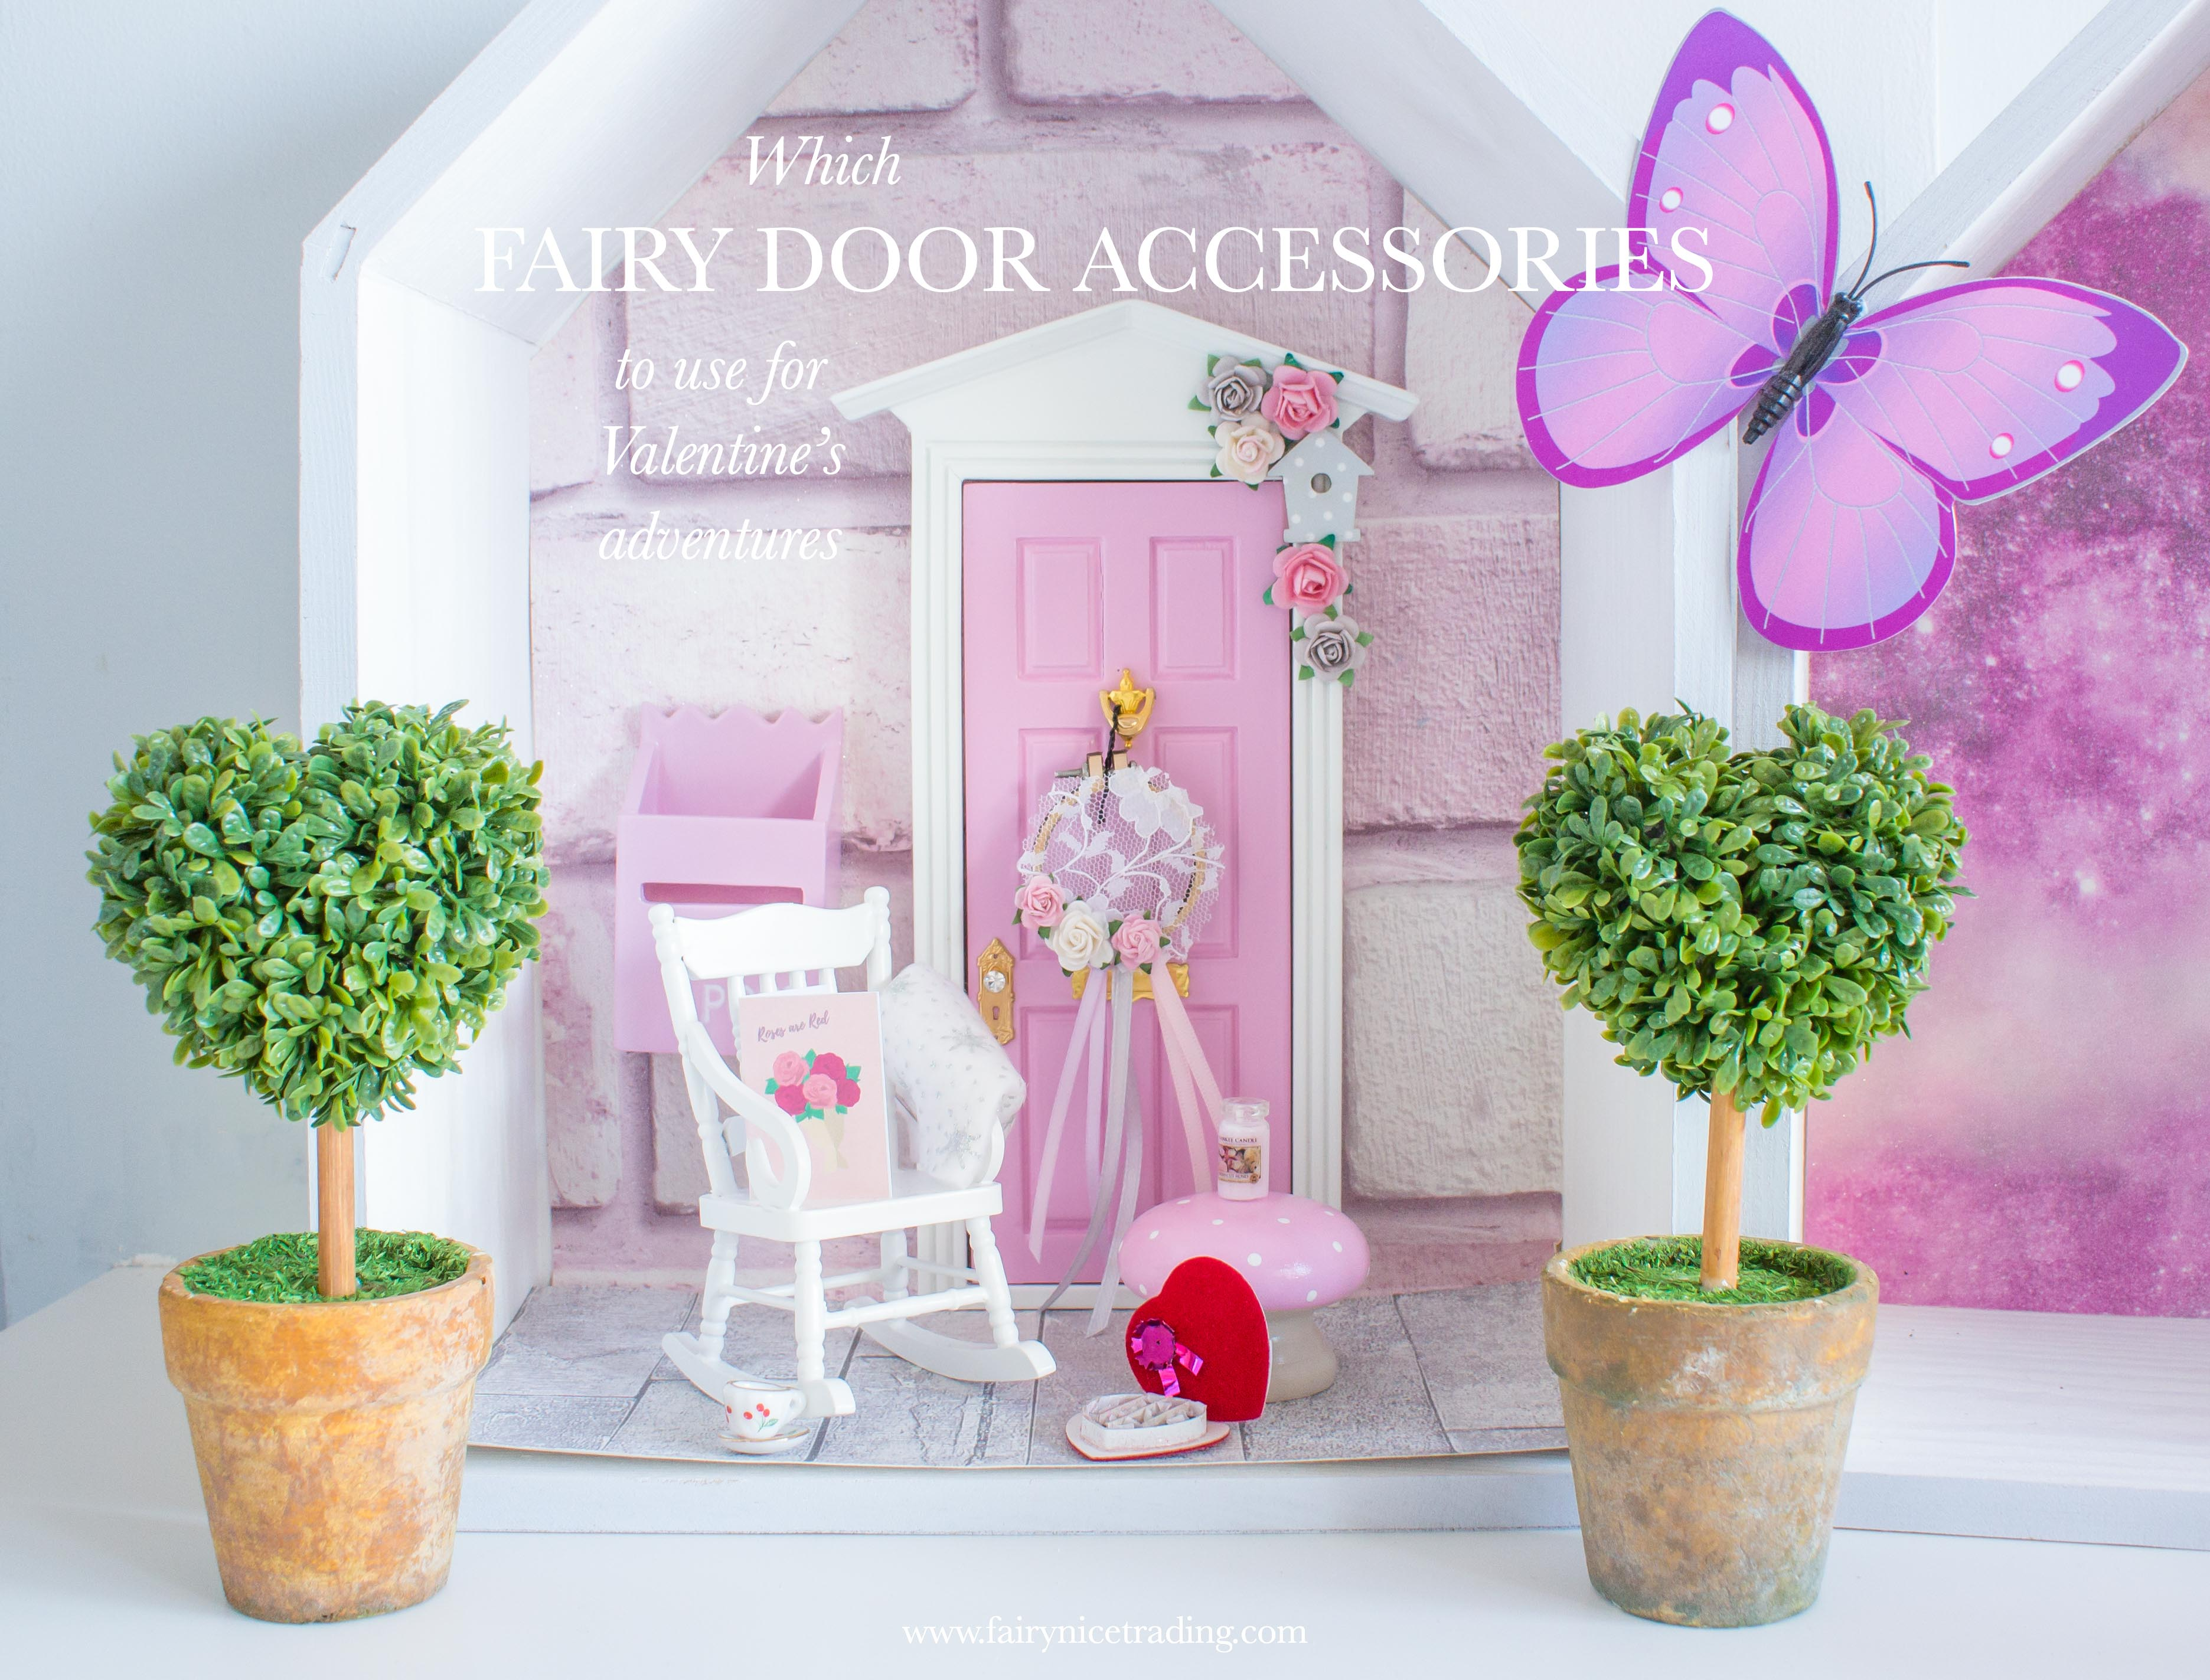 which Fairy Door accessories to use for Valentine's